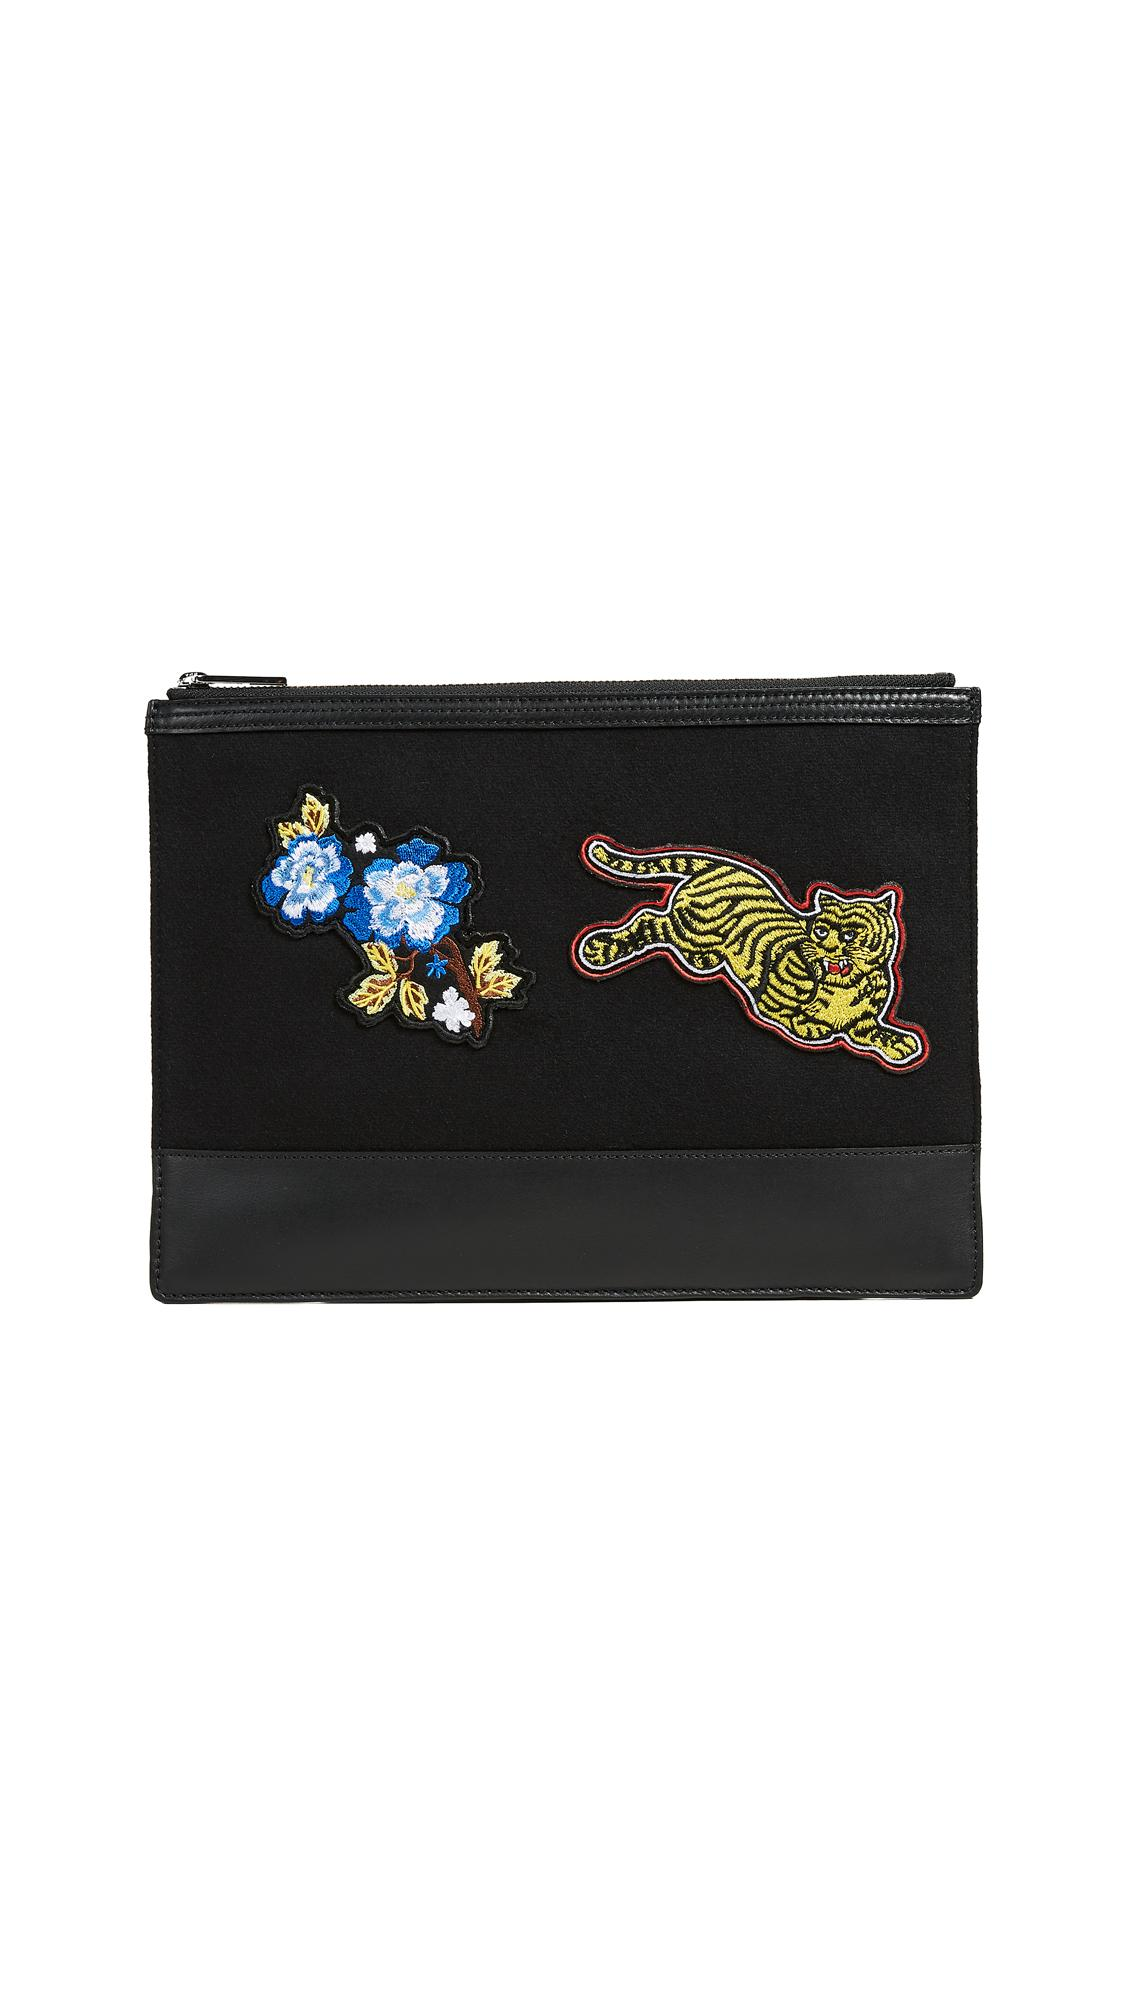 Kenzo Multicolored Patched Leather Pouch In Black